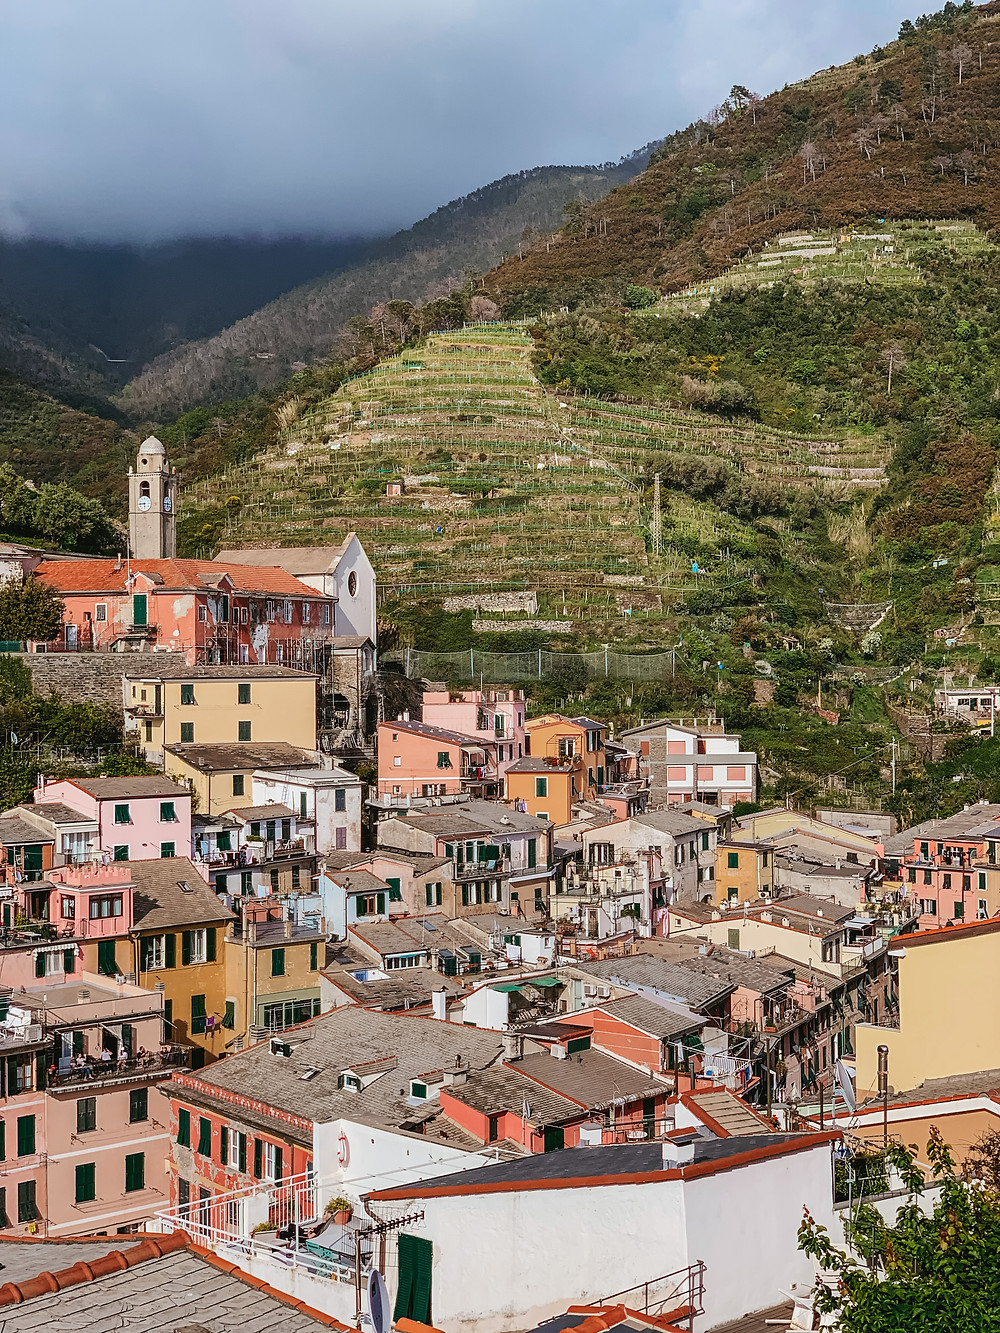 Vernazza best place to stay in cinque terre, where to stay in cinque terre, cinque terre villages, cinque terre village breakdown, which town to stay in cinque terre, vernazza view, instagram places in cinque terre